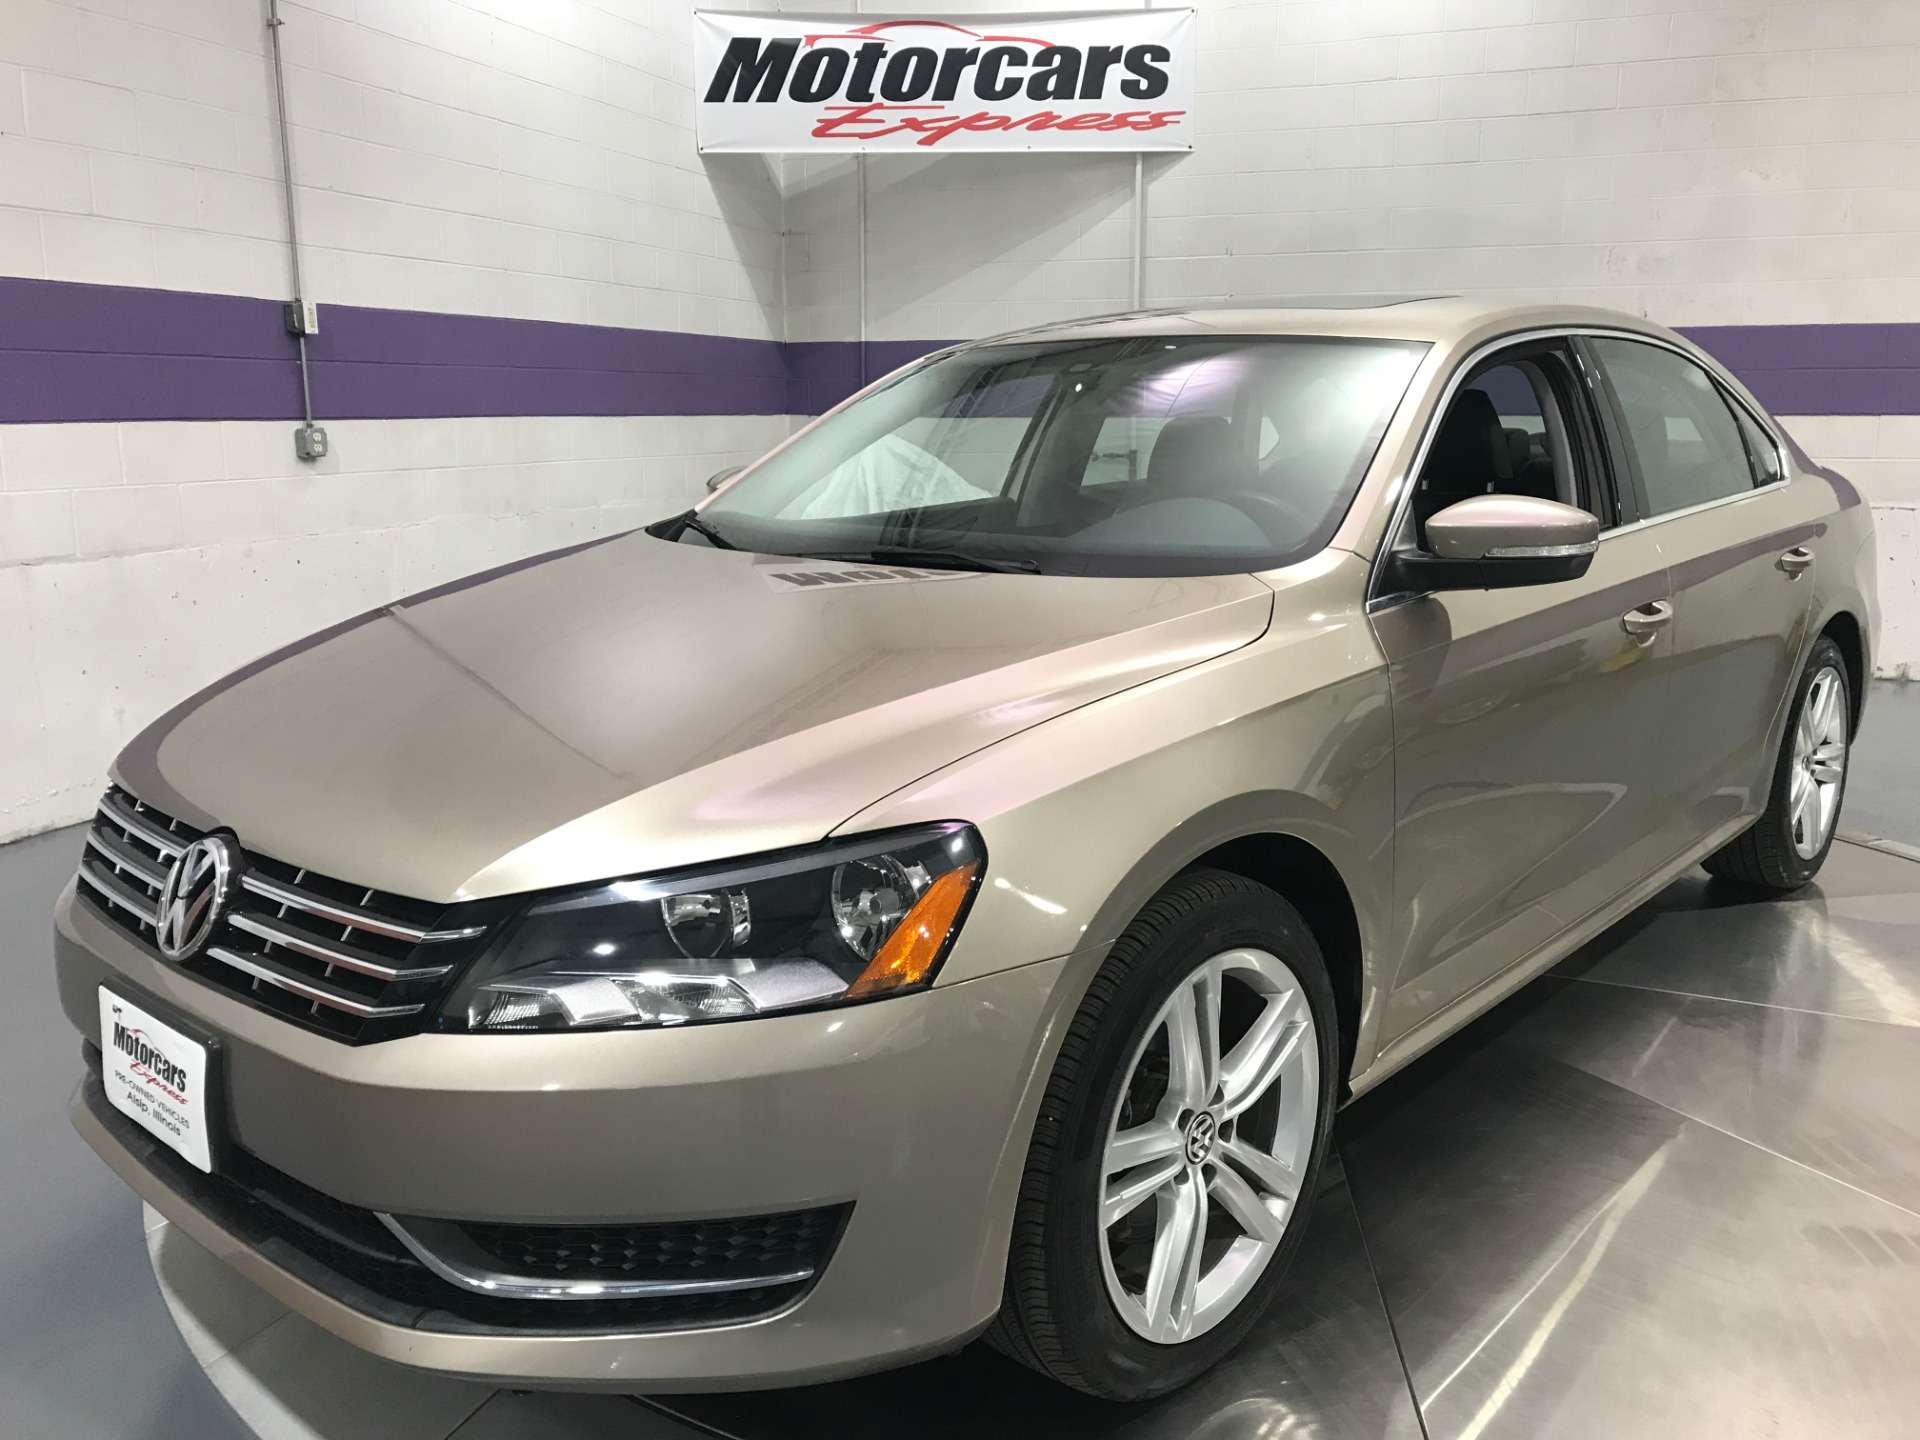 Used-2015-Volkswagen-Passat-TDI-SE-4dr-Sedan-6A-w/Sunroof